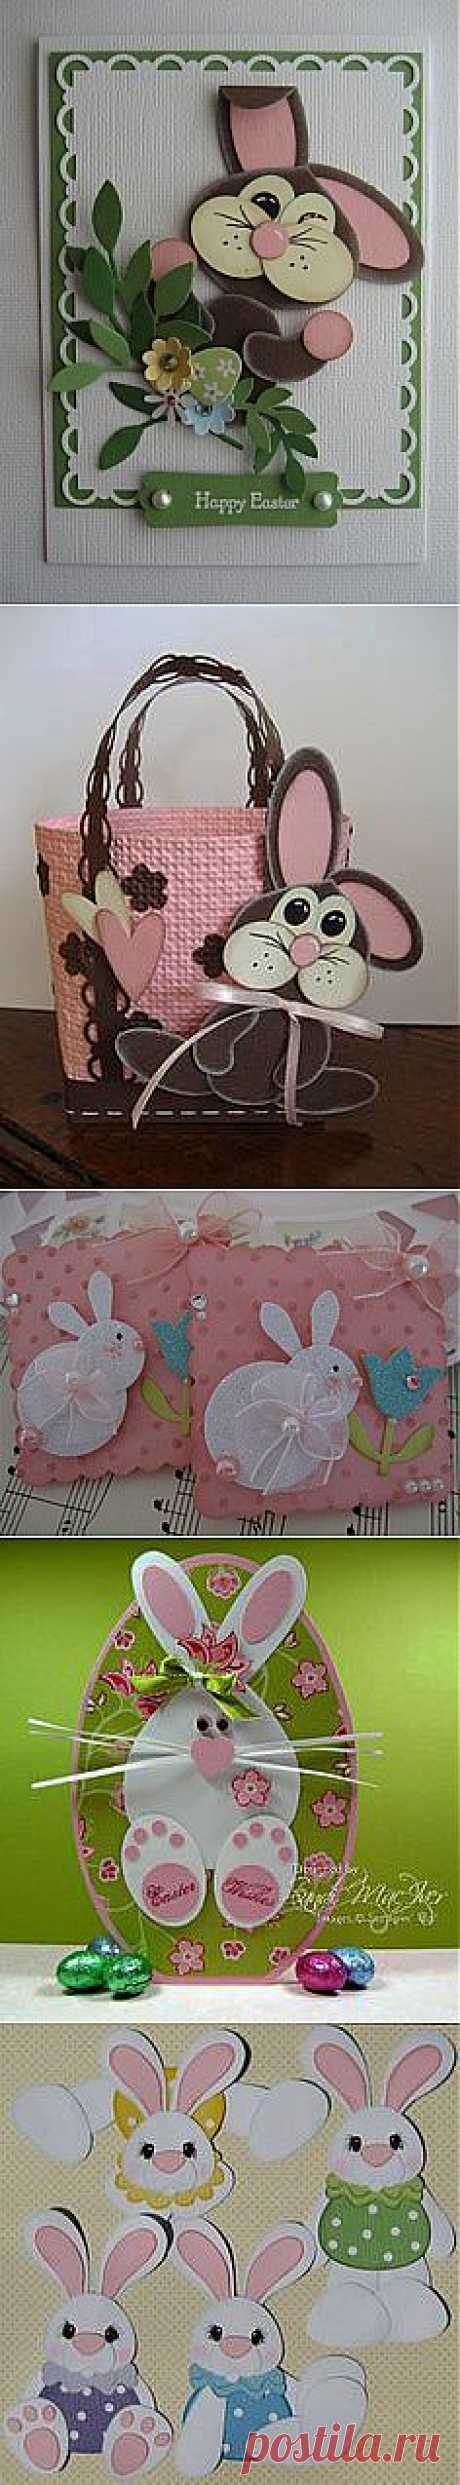 Pin by Cindy Silbaugh on Easter